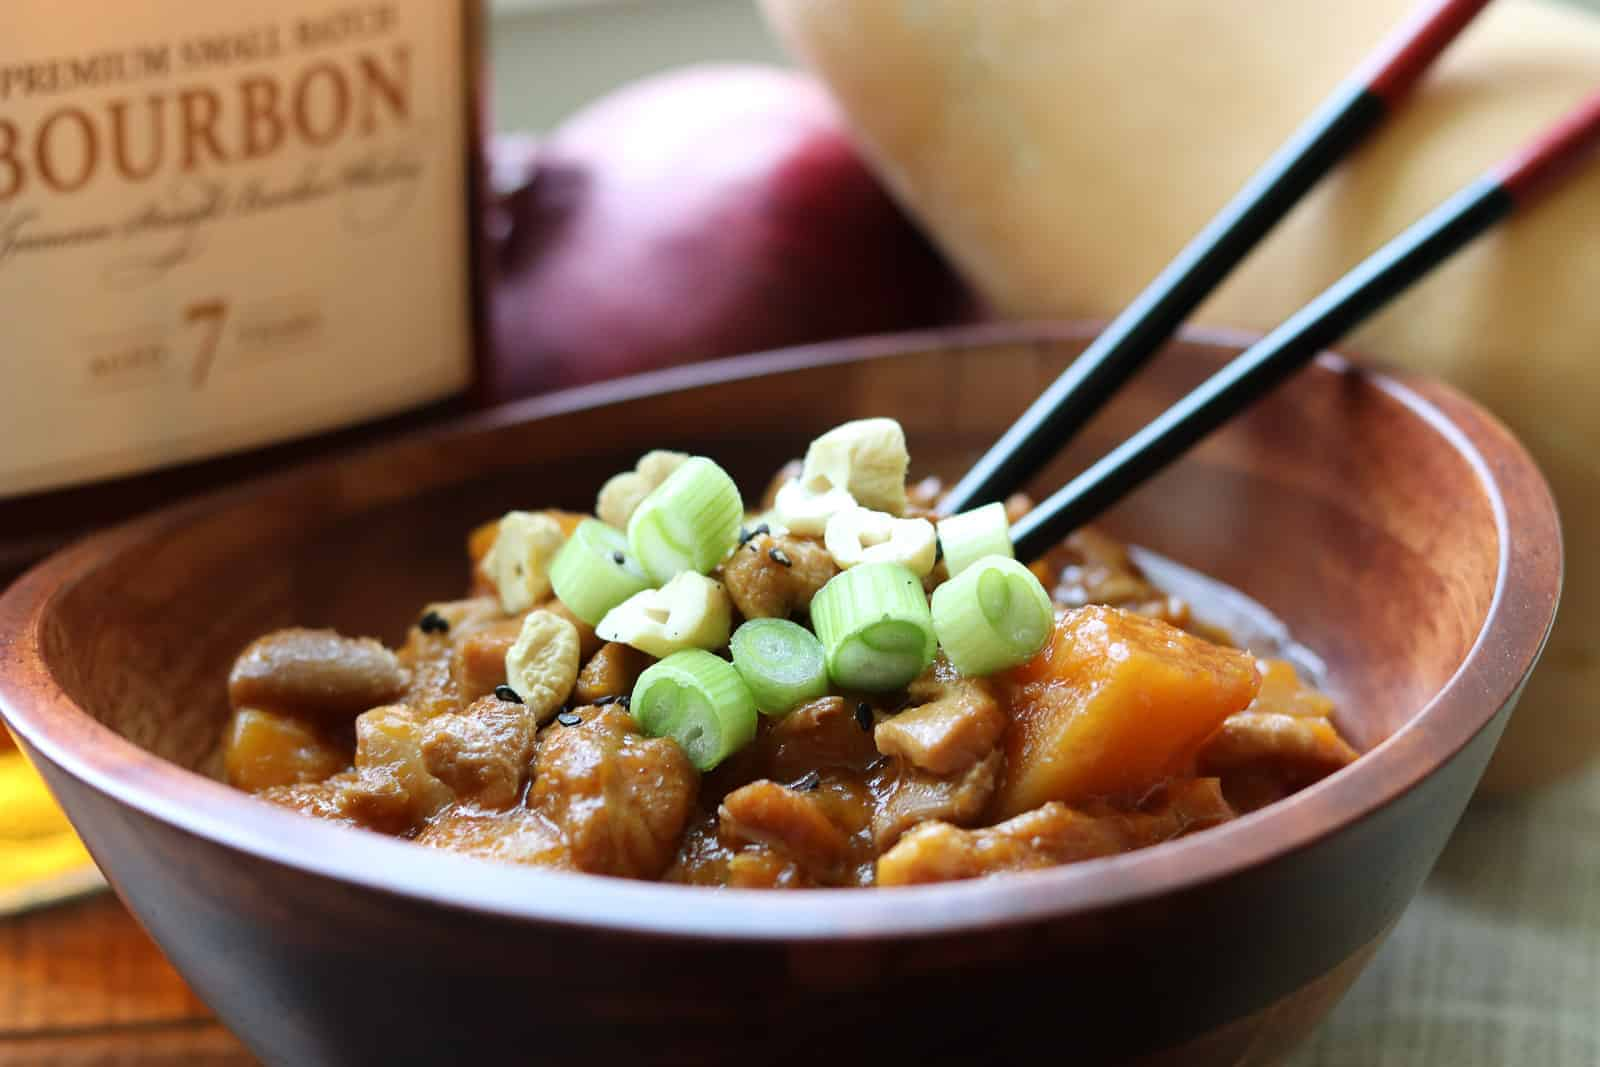 Instant Pot Bourbon Butternut Chicken from Gourmet Done Skinny in a wooden bowl with chopsticks, bourbon, butternut squash and onion on board nearby